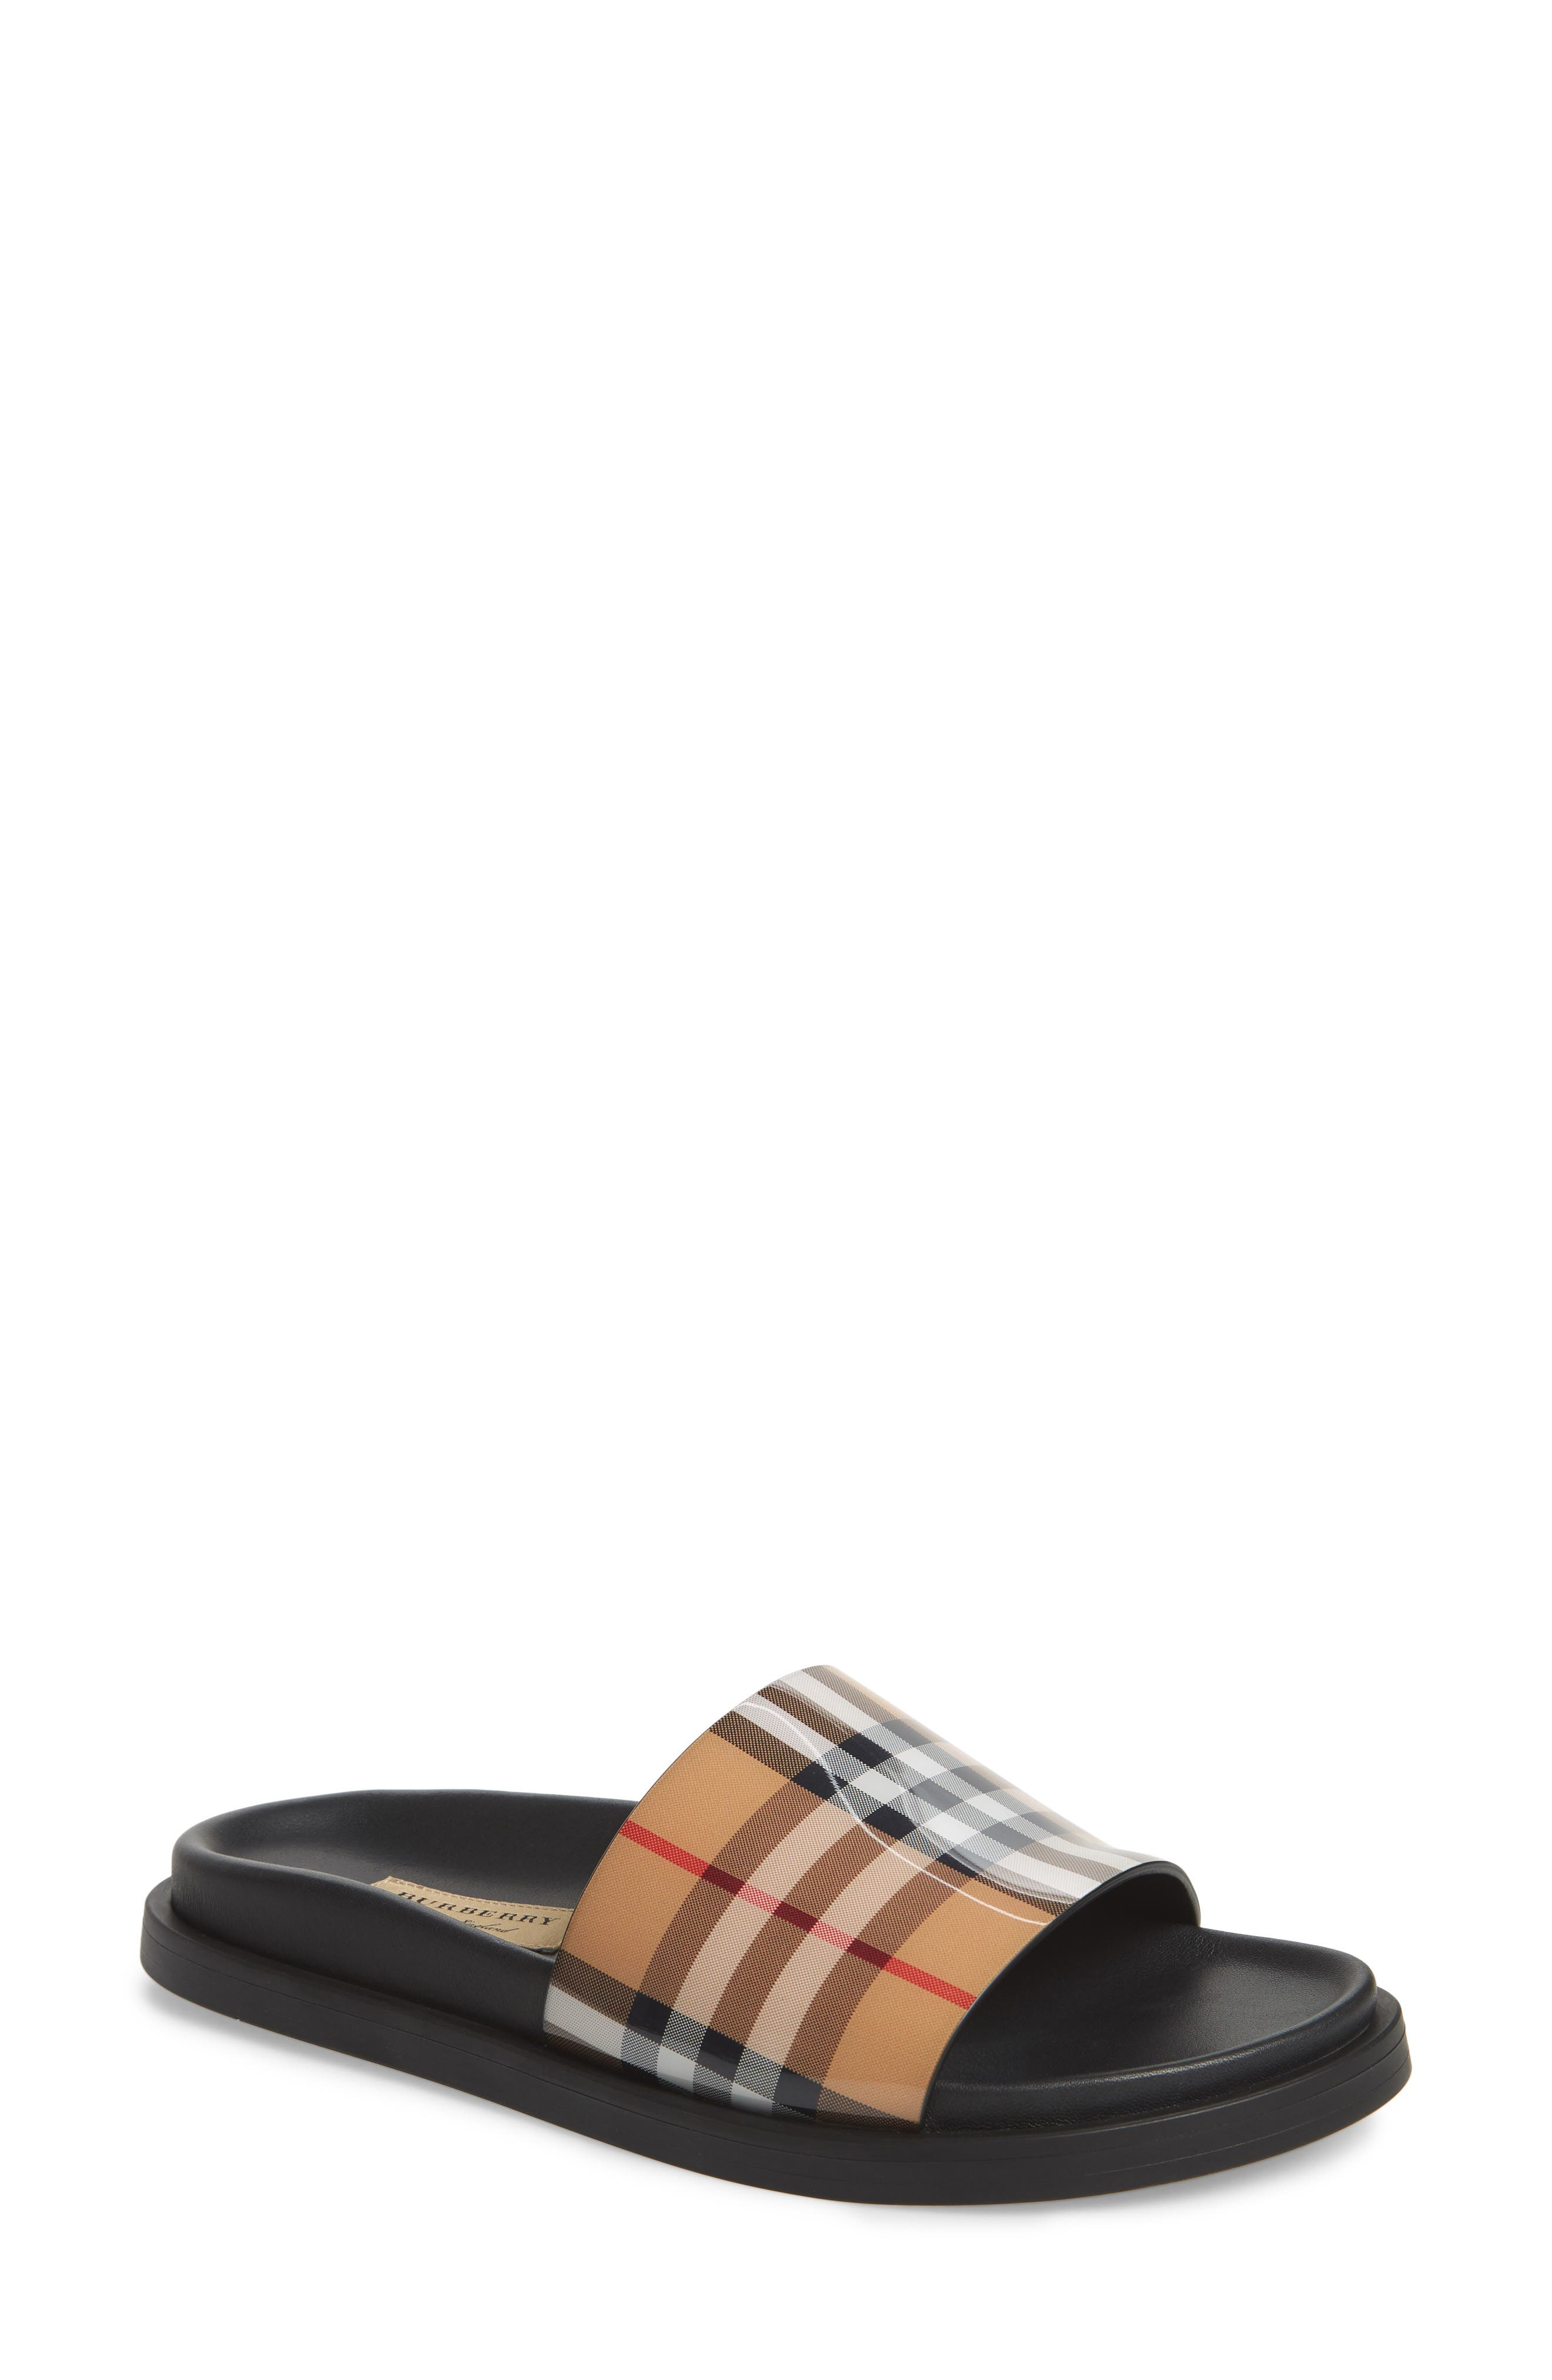 Burberry Vintage Check Slide Sandal (Women)